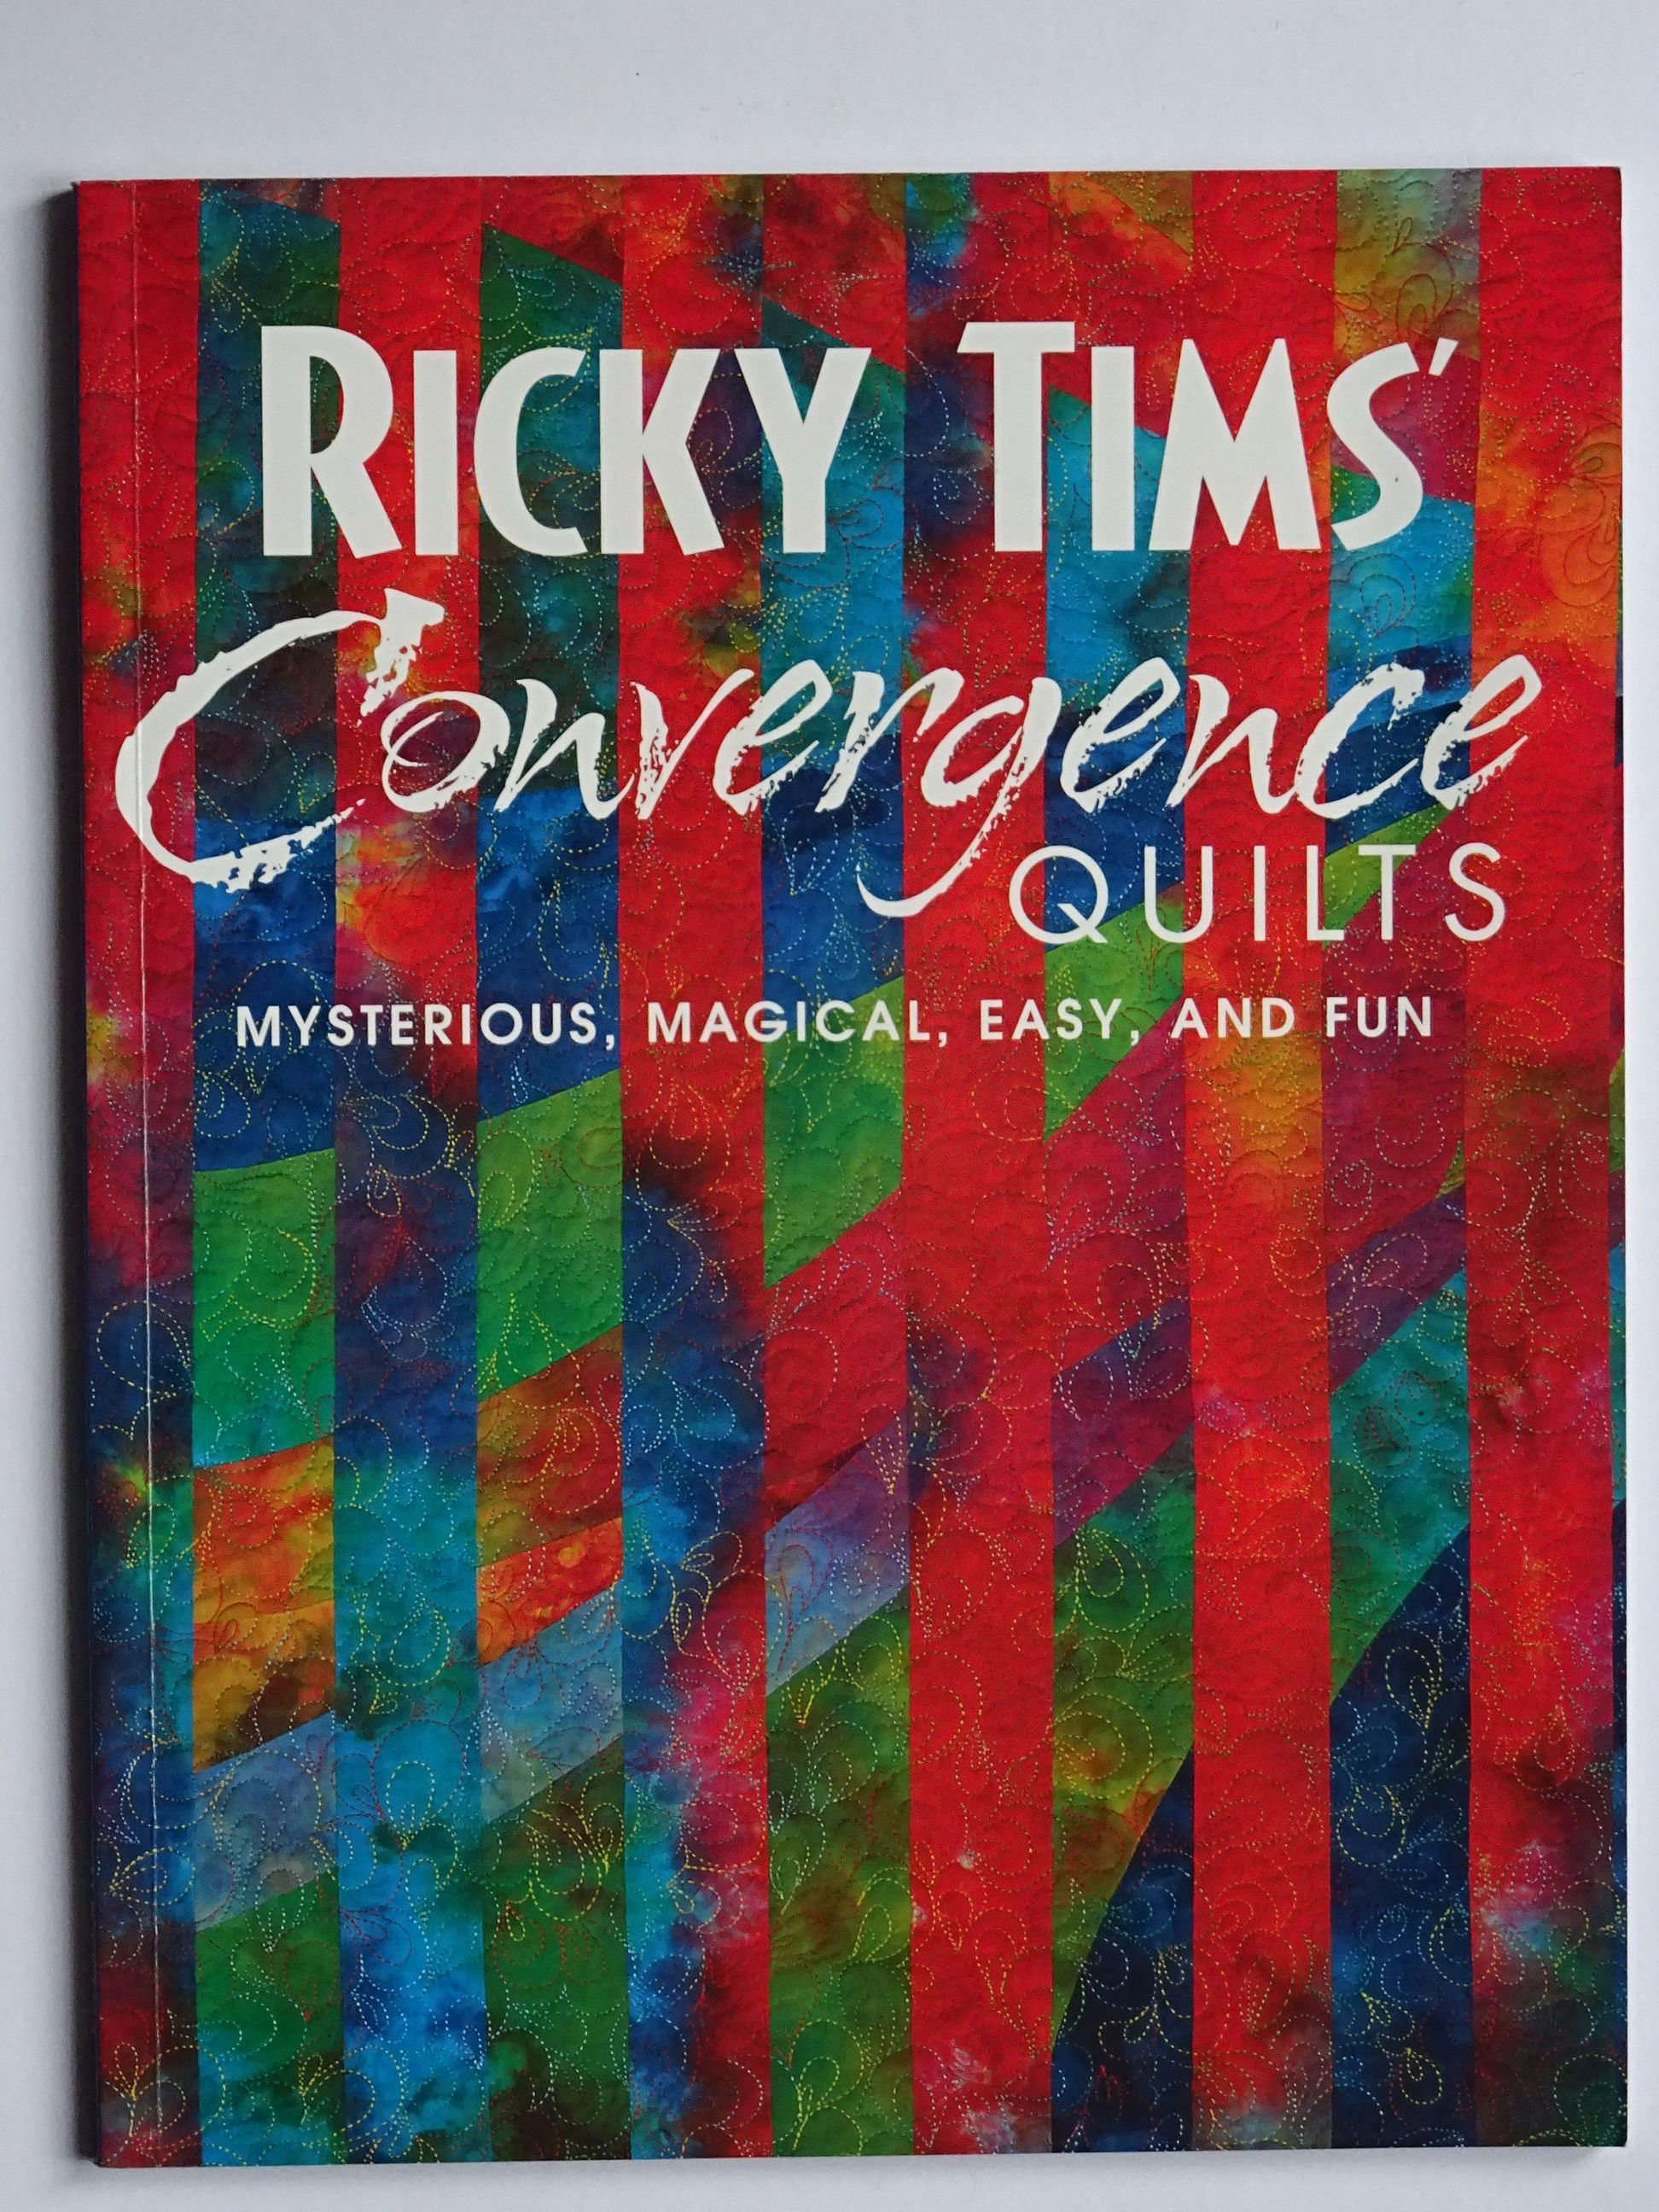 Timms, Ricky - Ricky Timms Convergence Quilts. Mysterious, Magical Easy and Fun.